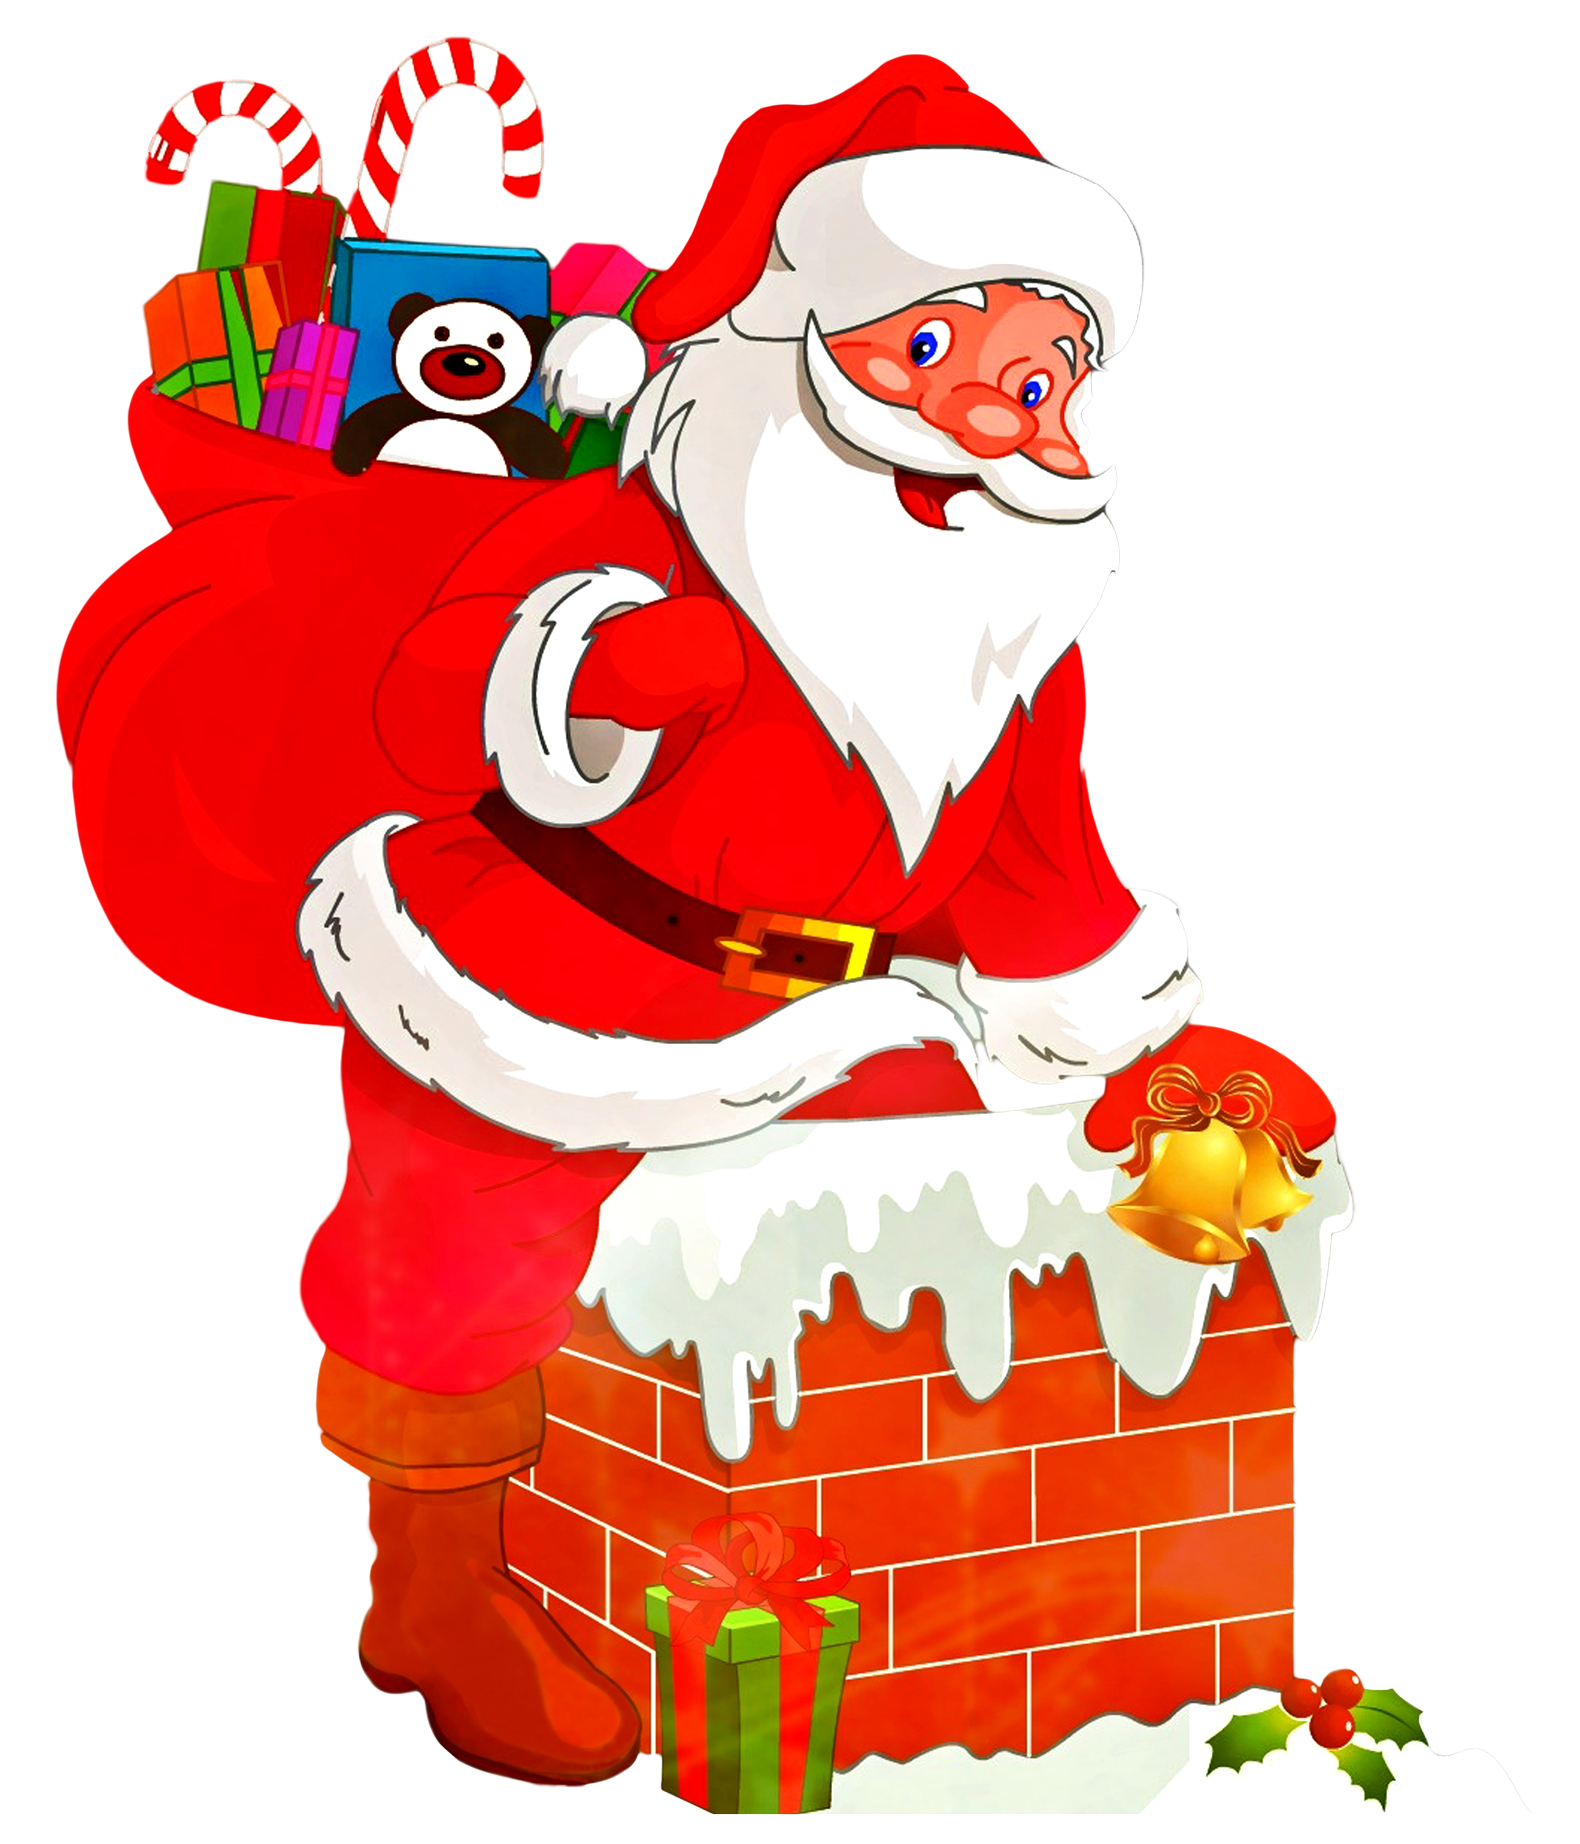 Santa Claus PNG Transparent Image